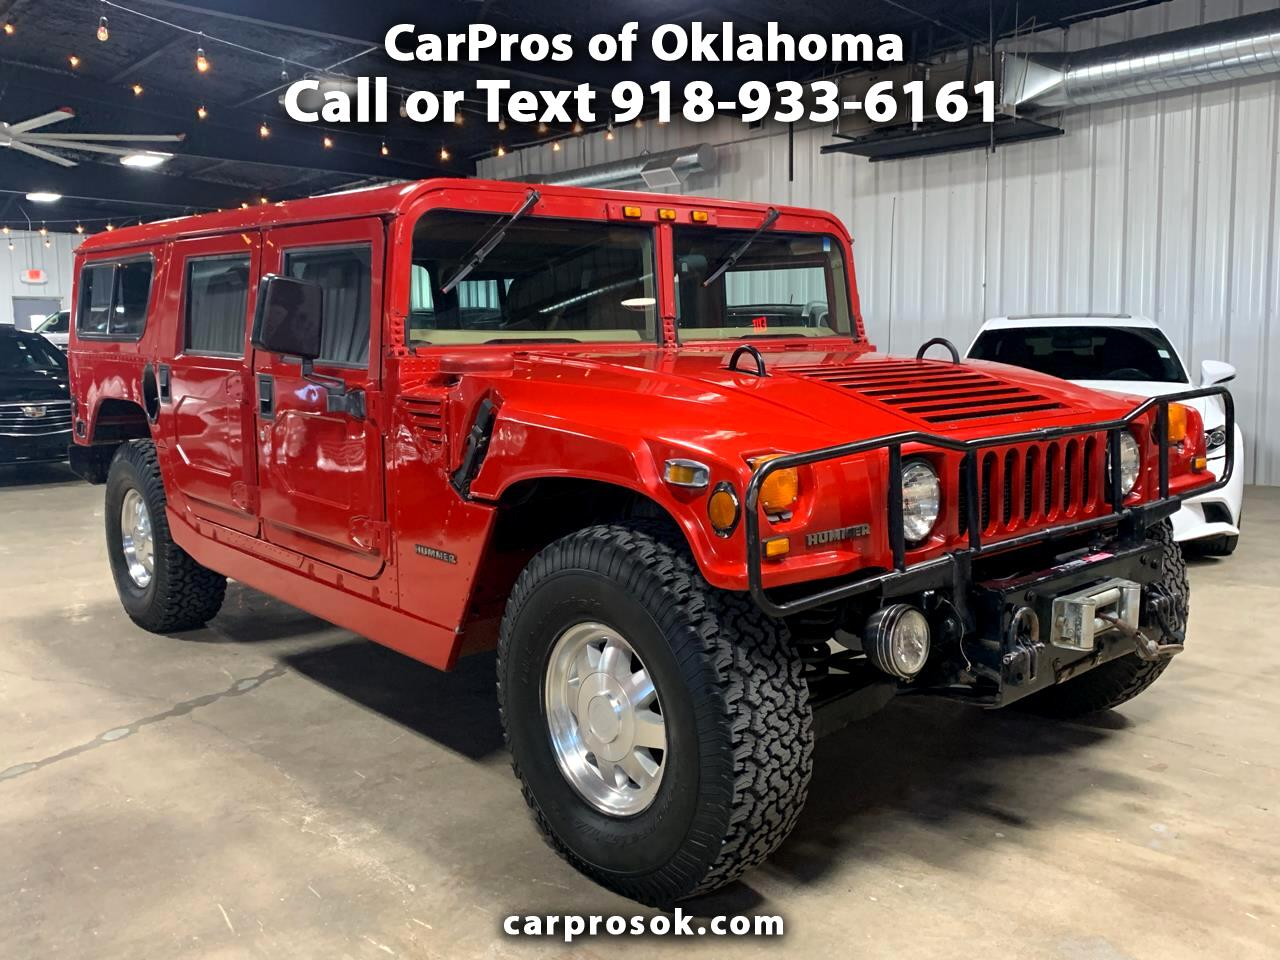 1994 AM General Hummer 4dr Wagon